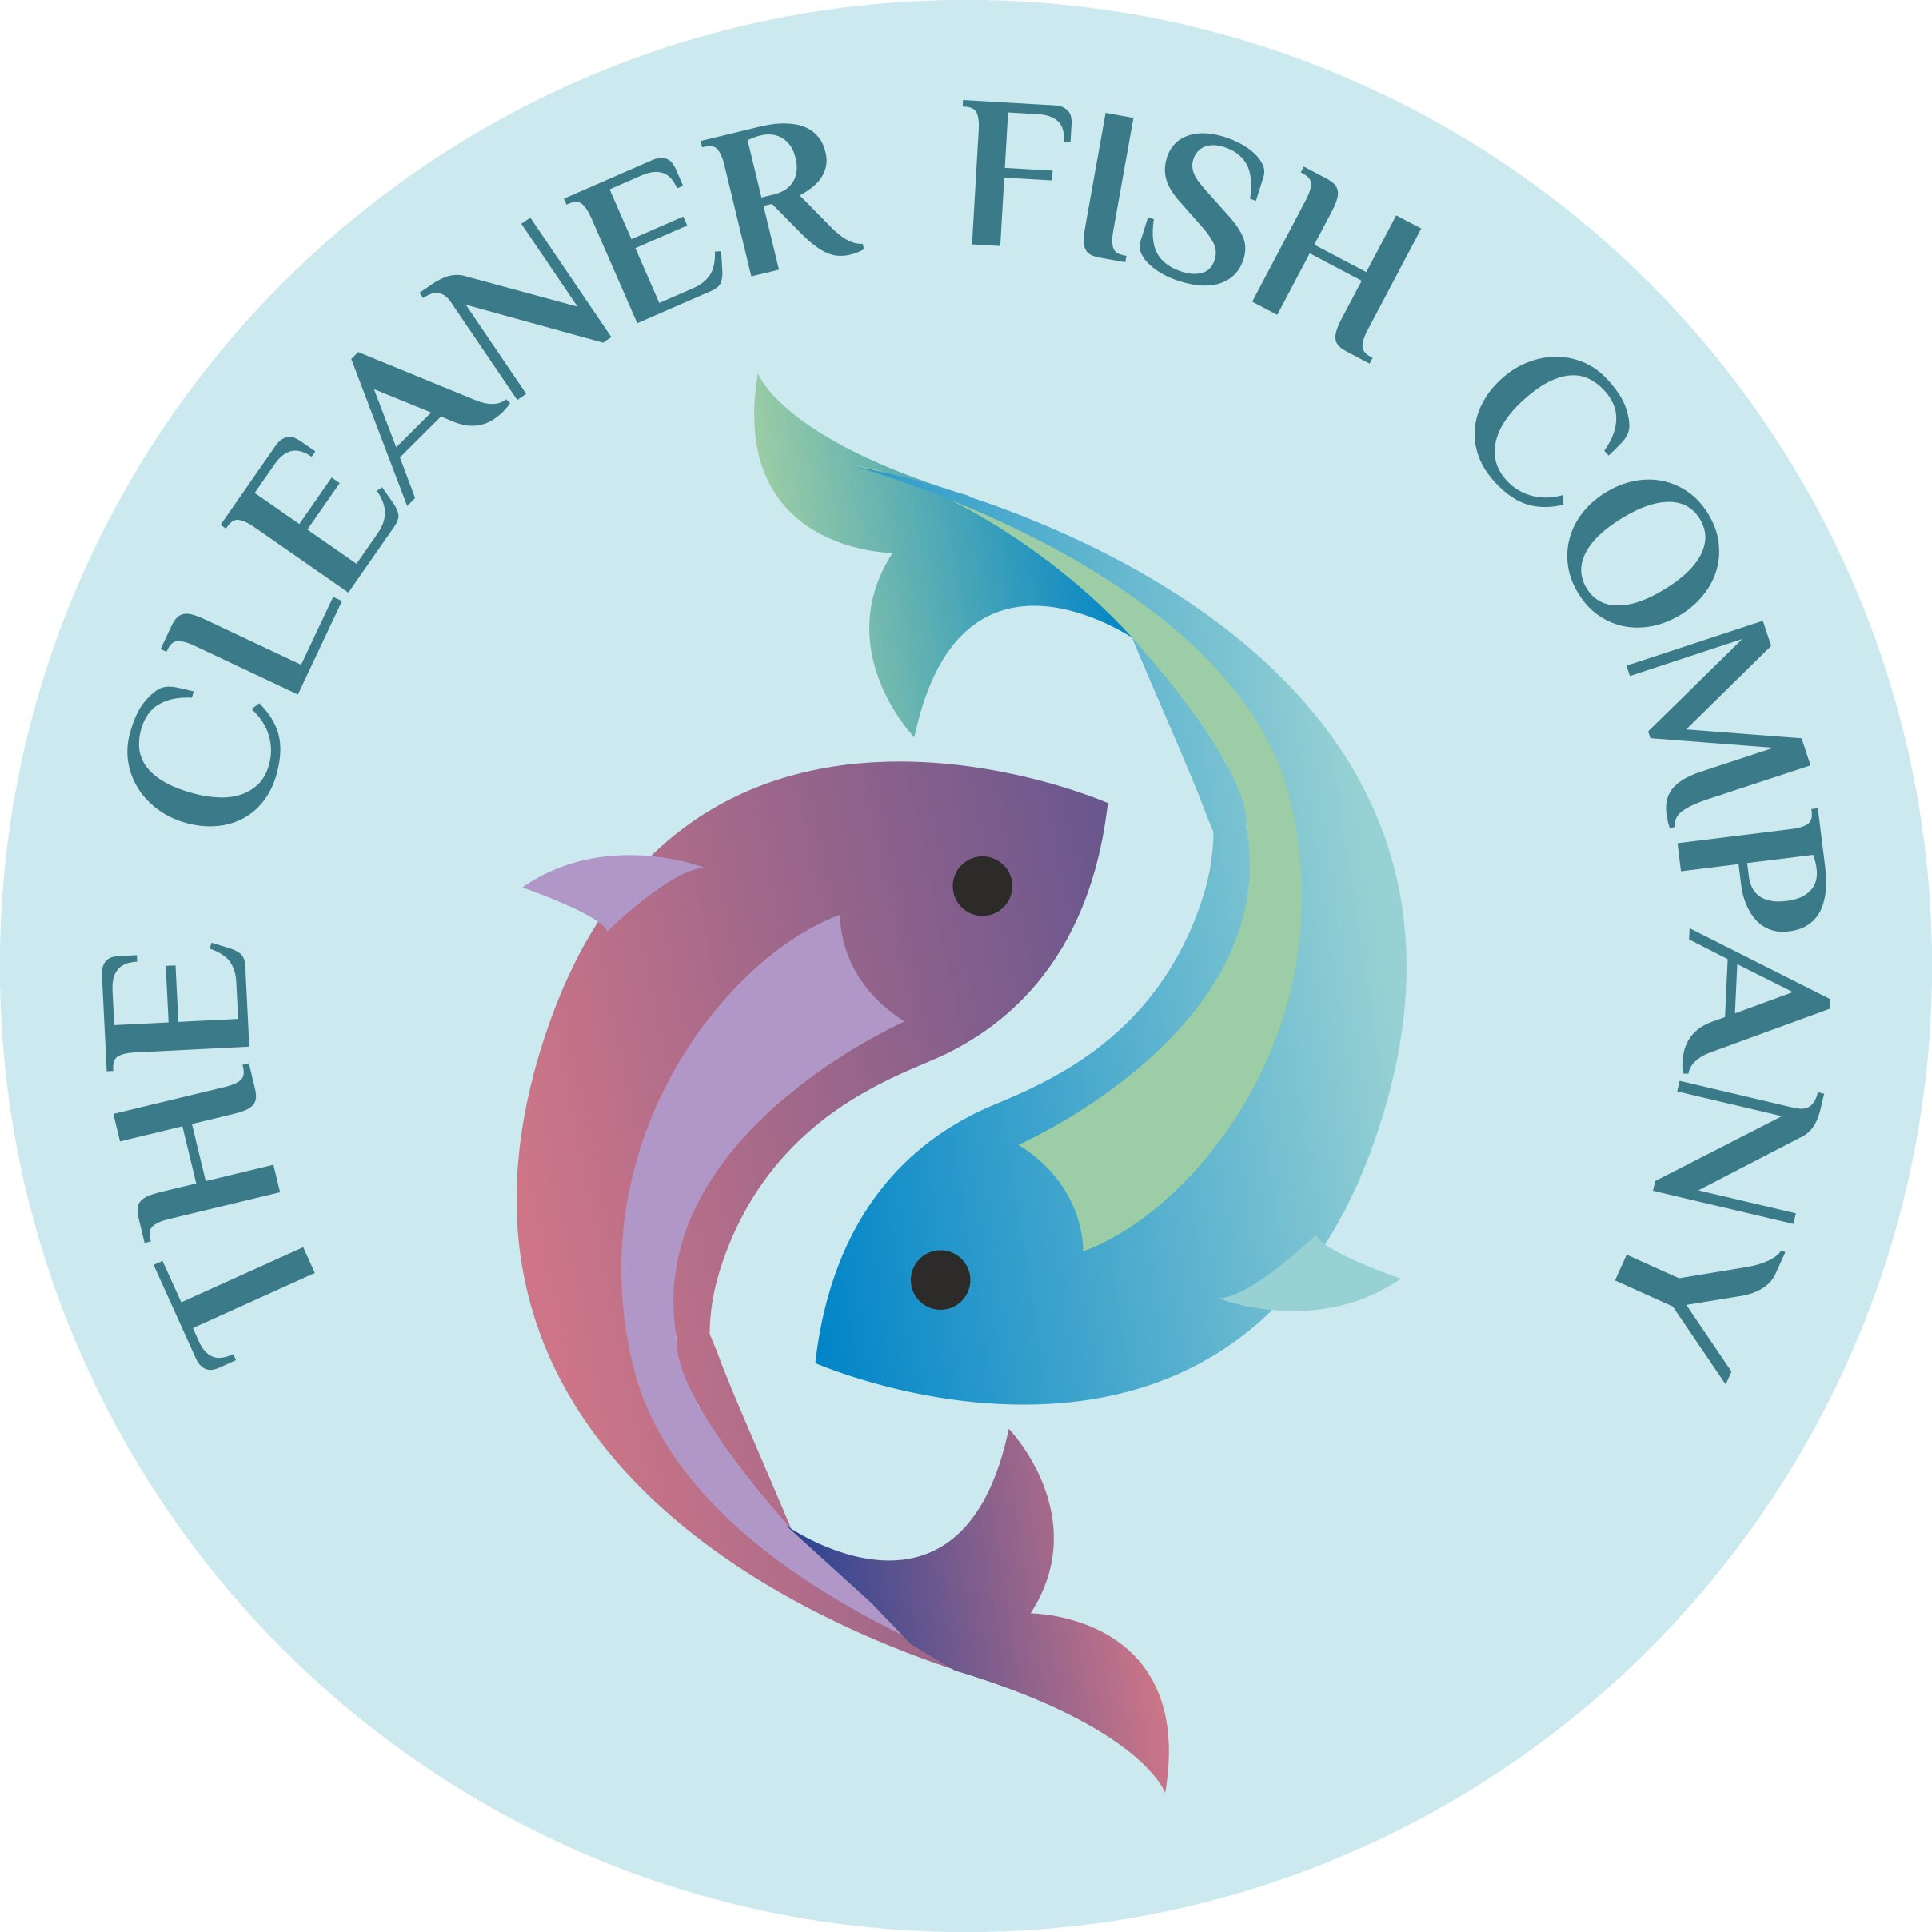 Cleaner Fish Company logo